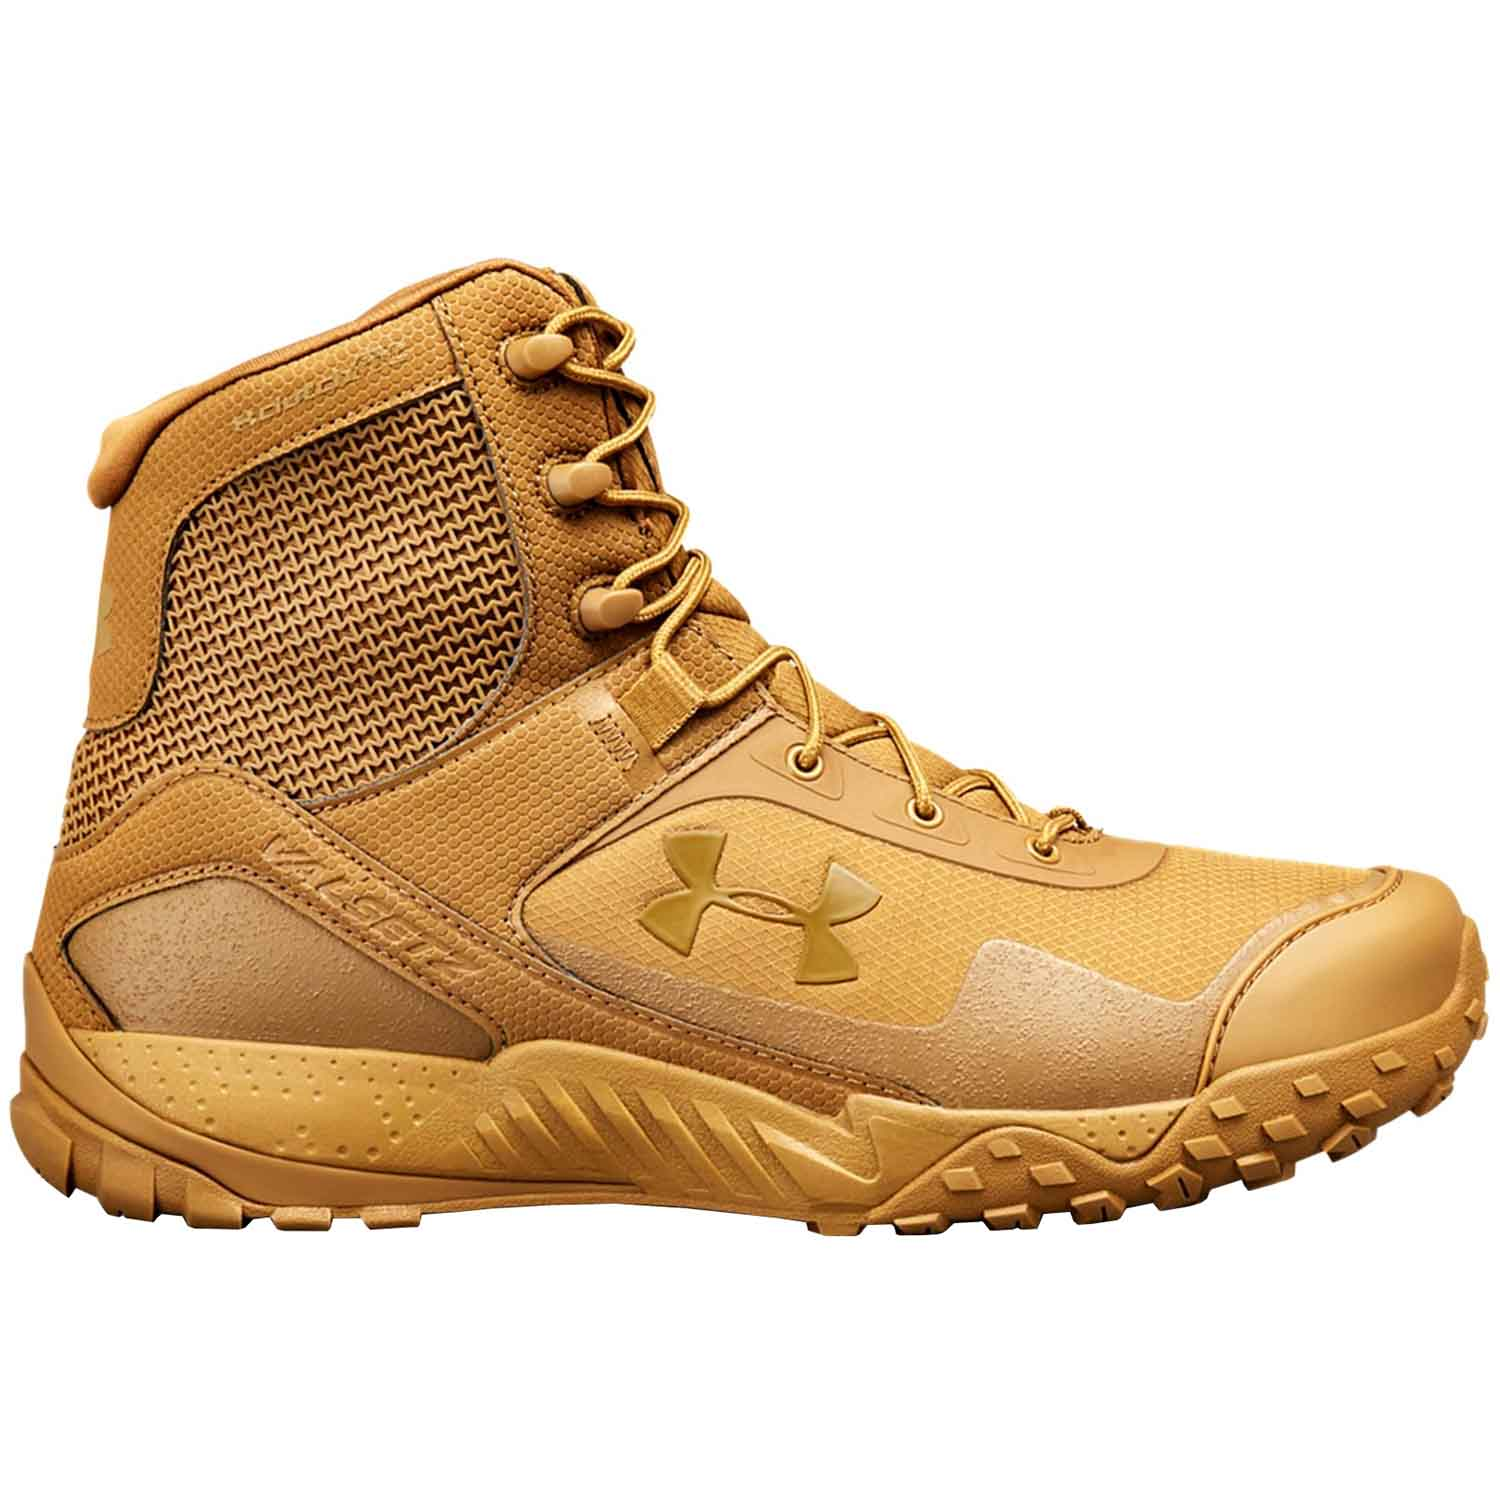 Under Armour Tactical from Nightgear